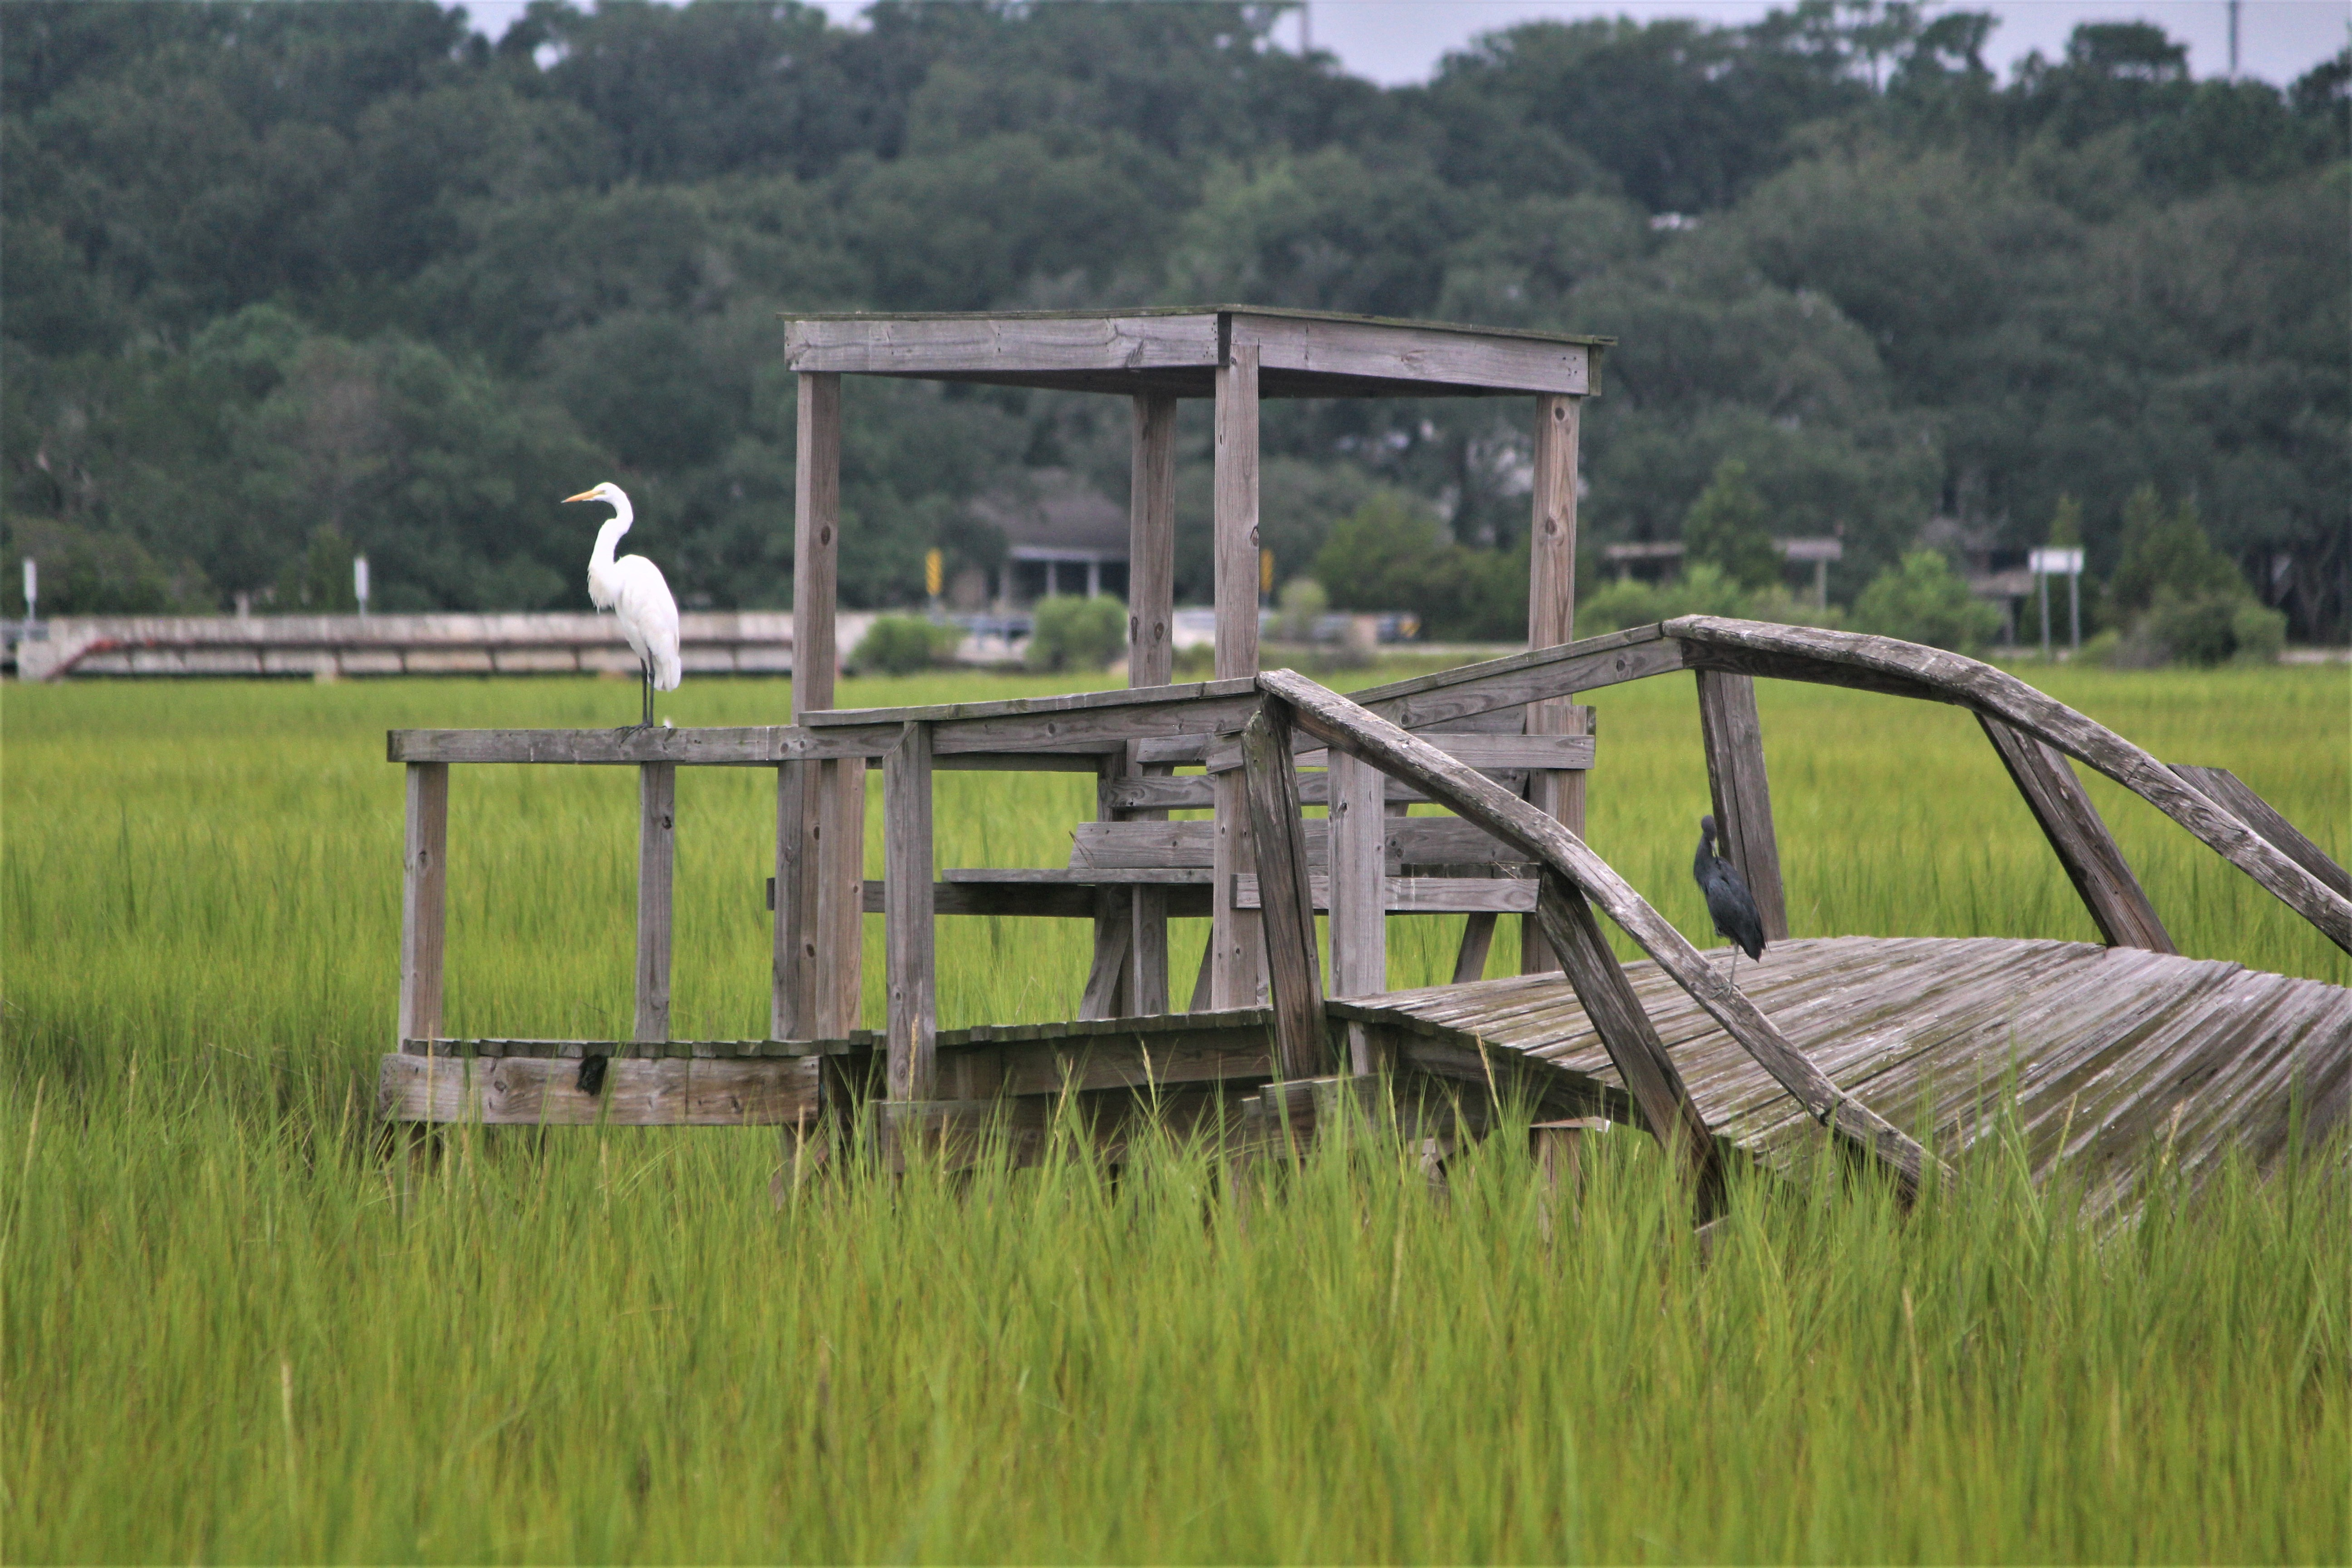 Crab dock at Pawleys Island, SC